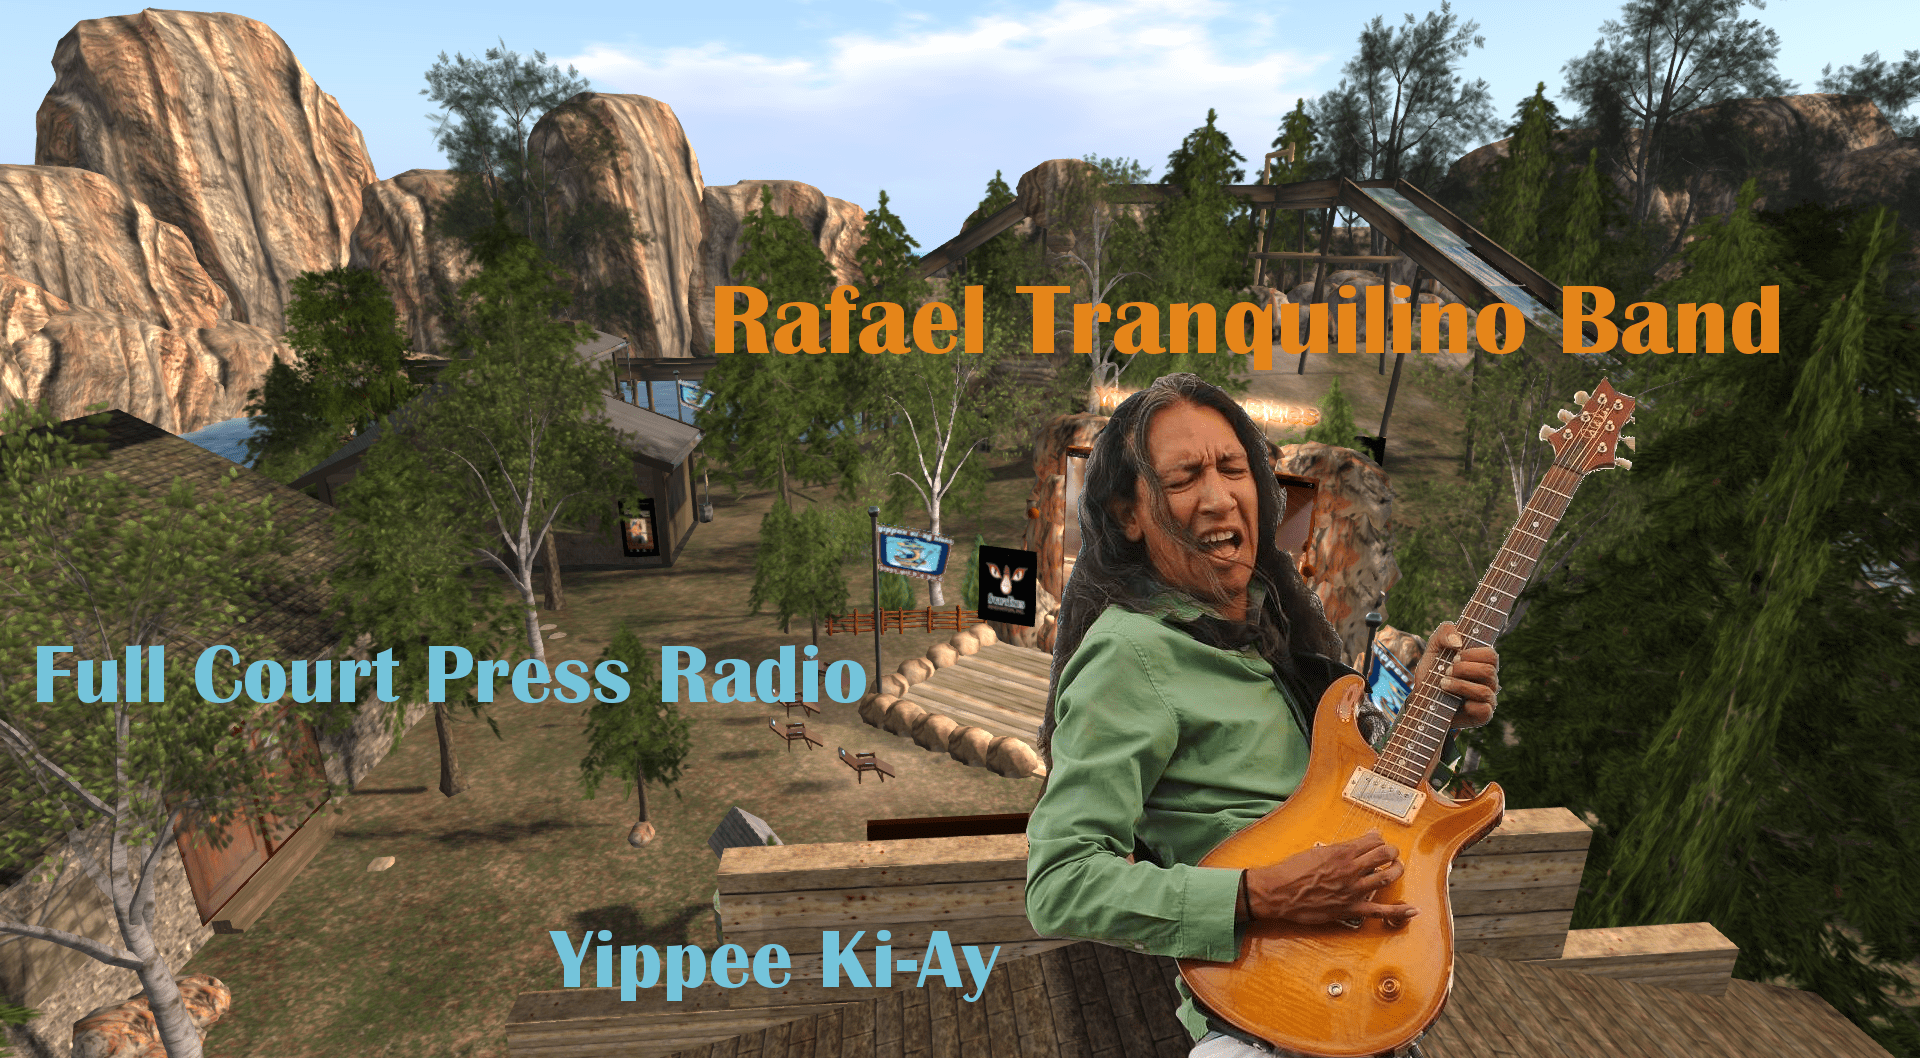 Rafael Tranquilino Band on Full Court Press Radio